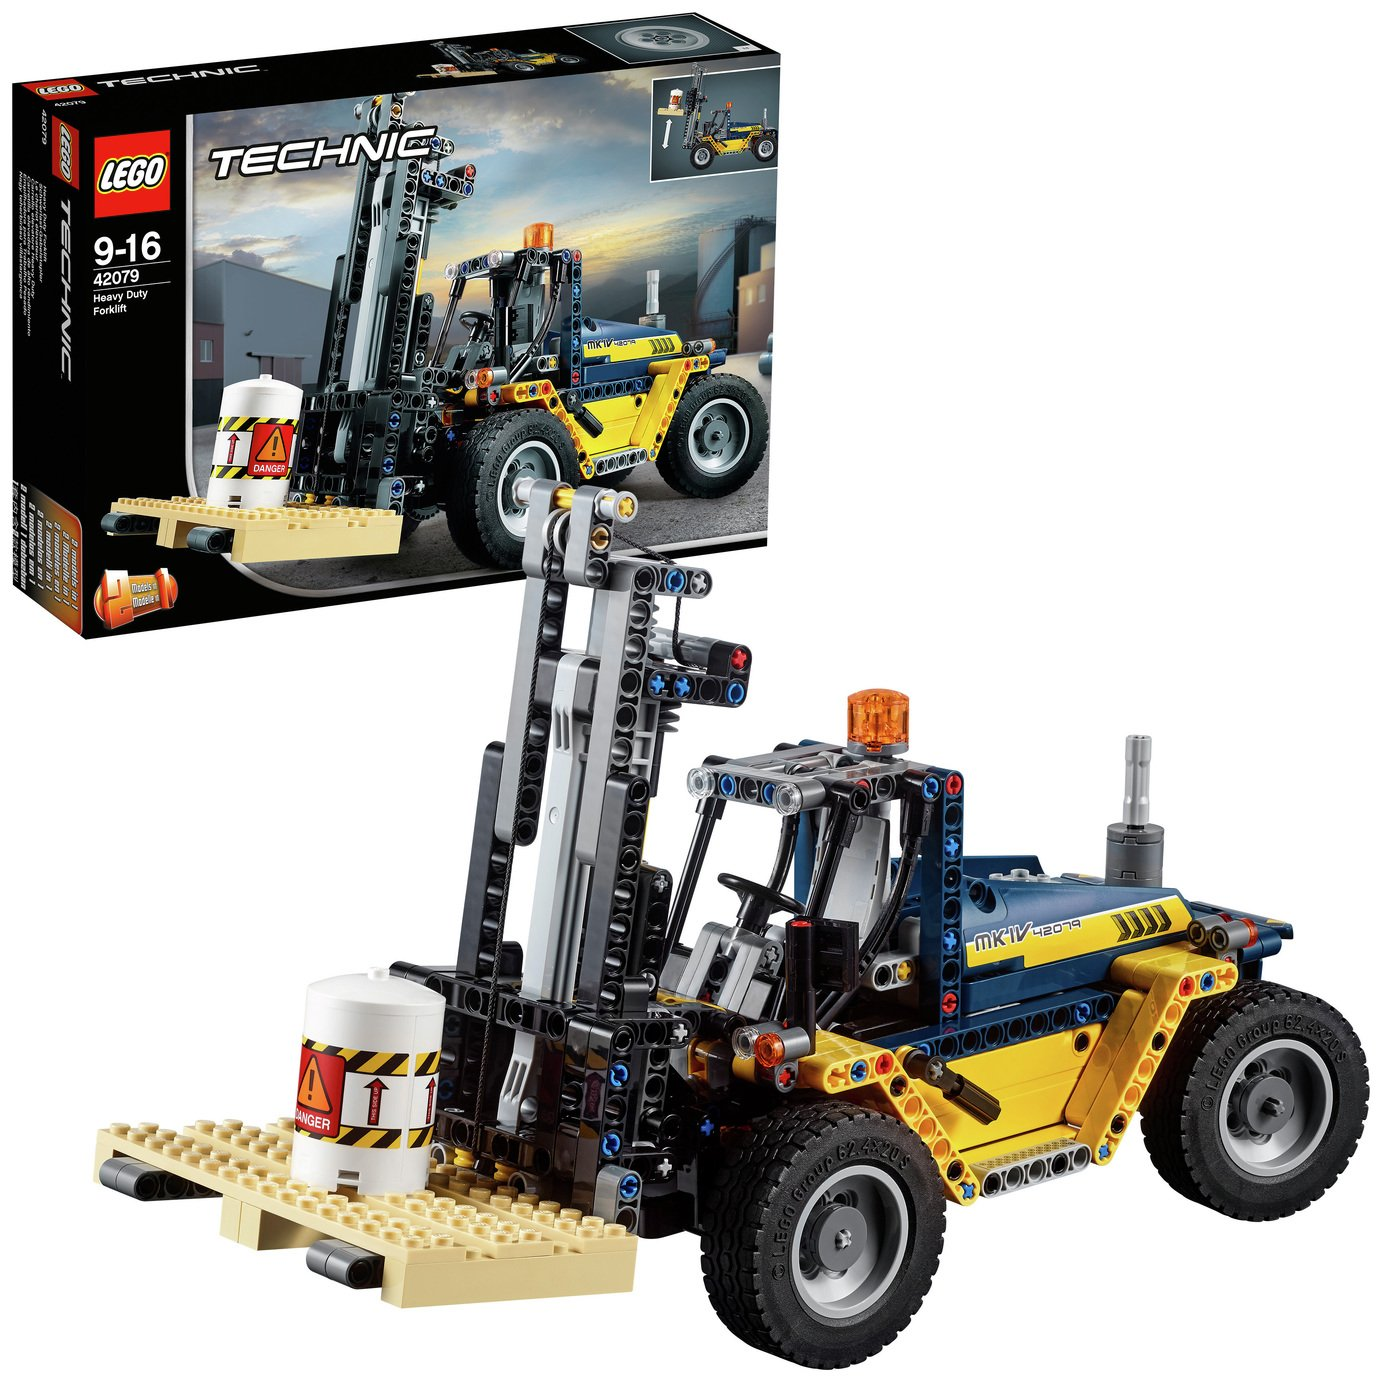 LEGO Technic Heavy Duty Forklift - 42079